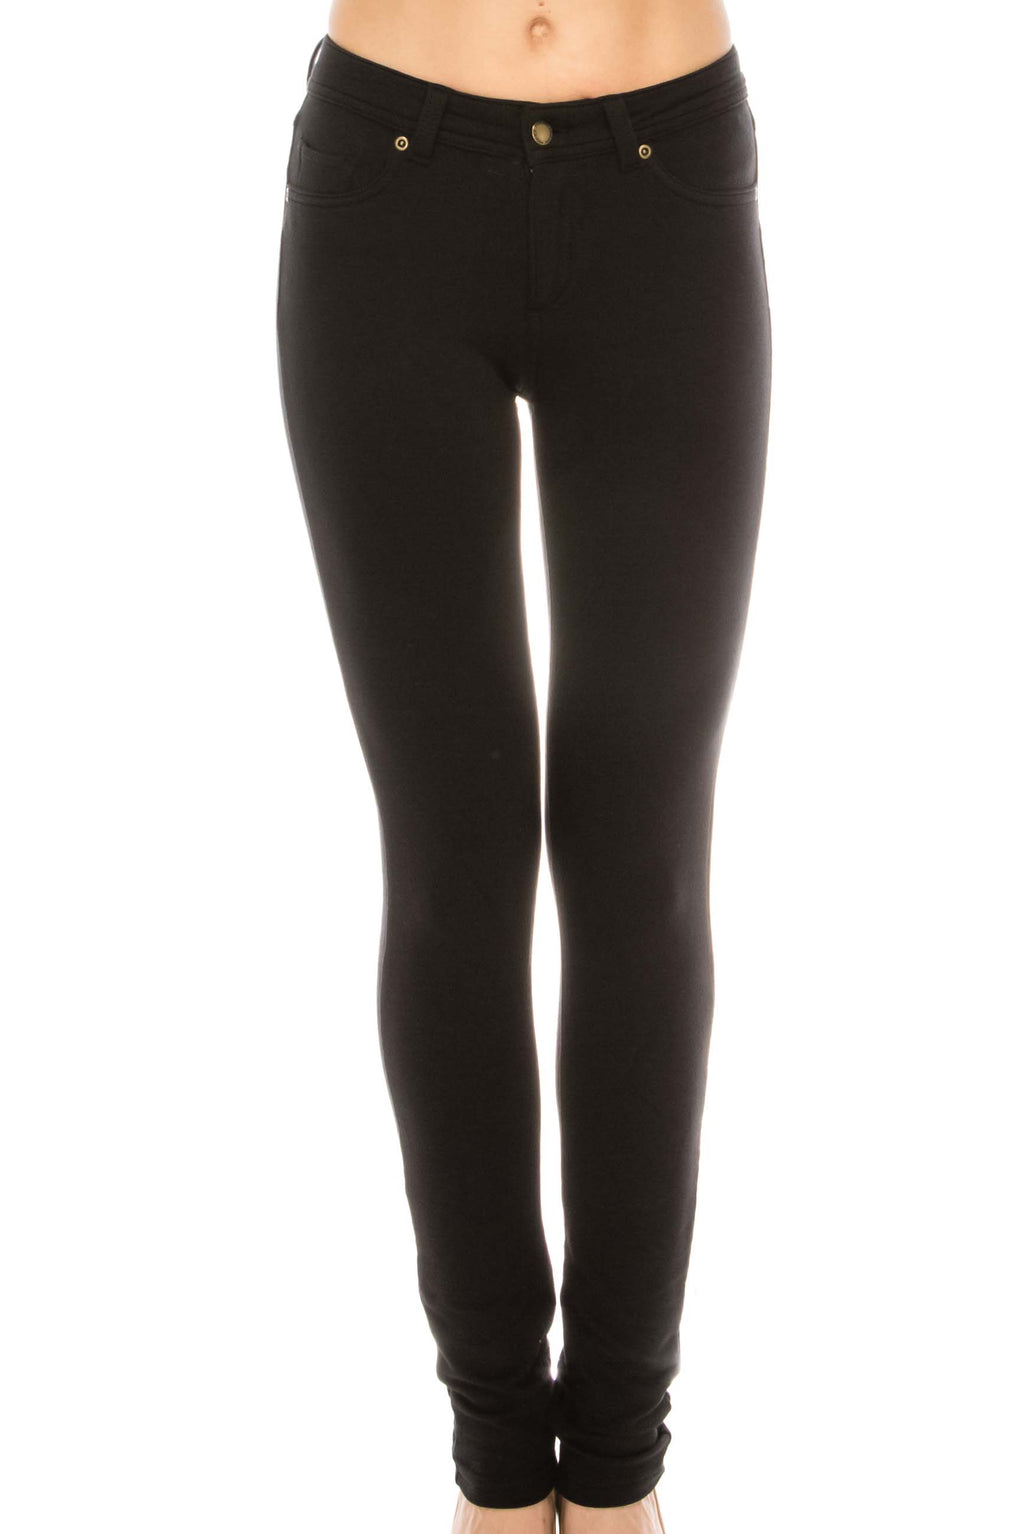 Girls Skinny Terry Pants-P87 - Pro 5 Apparel